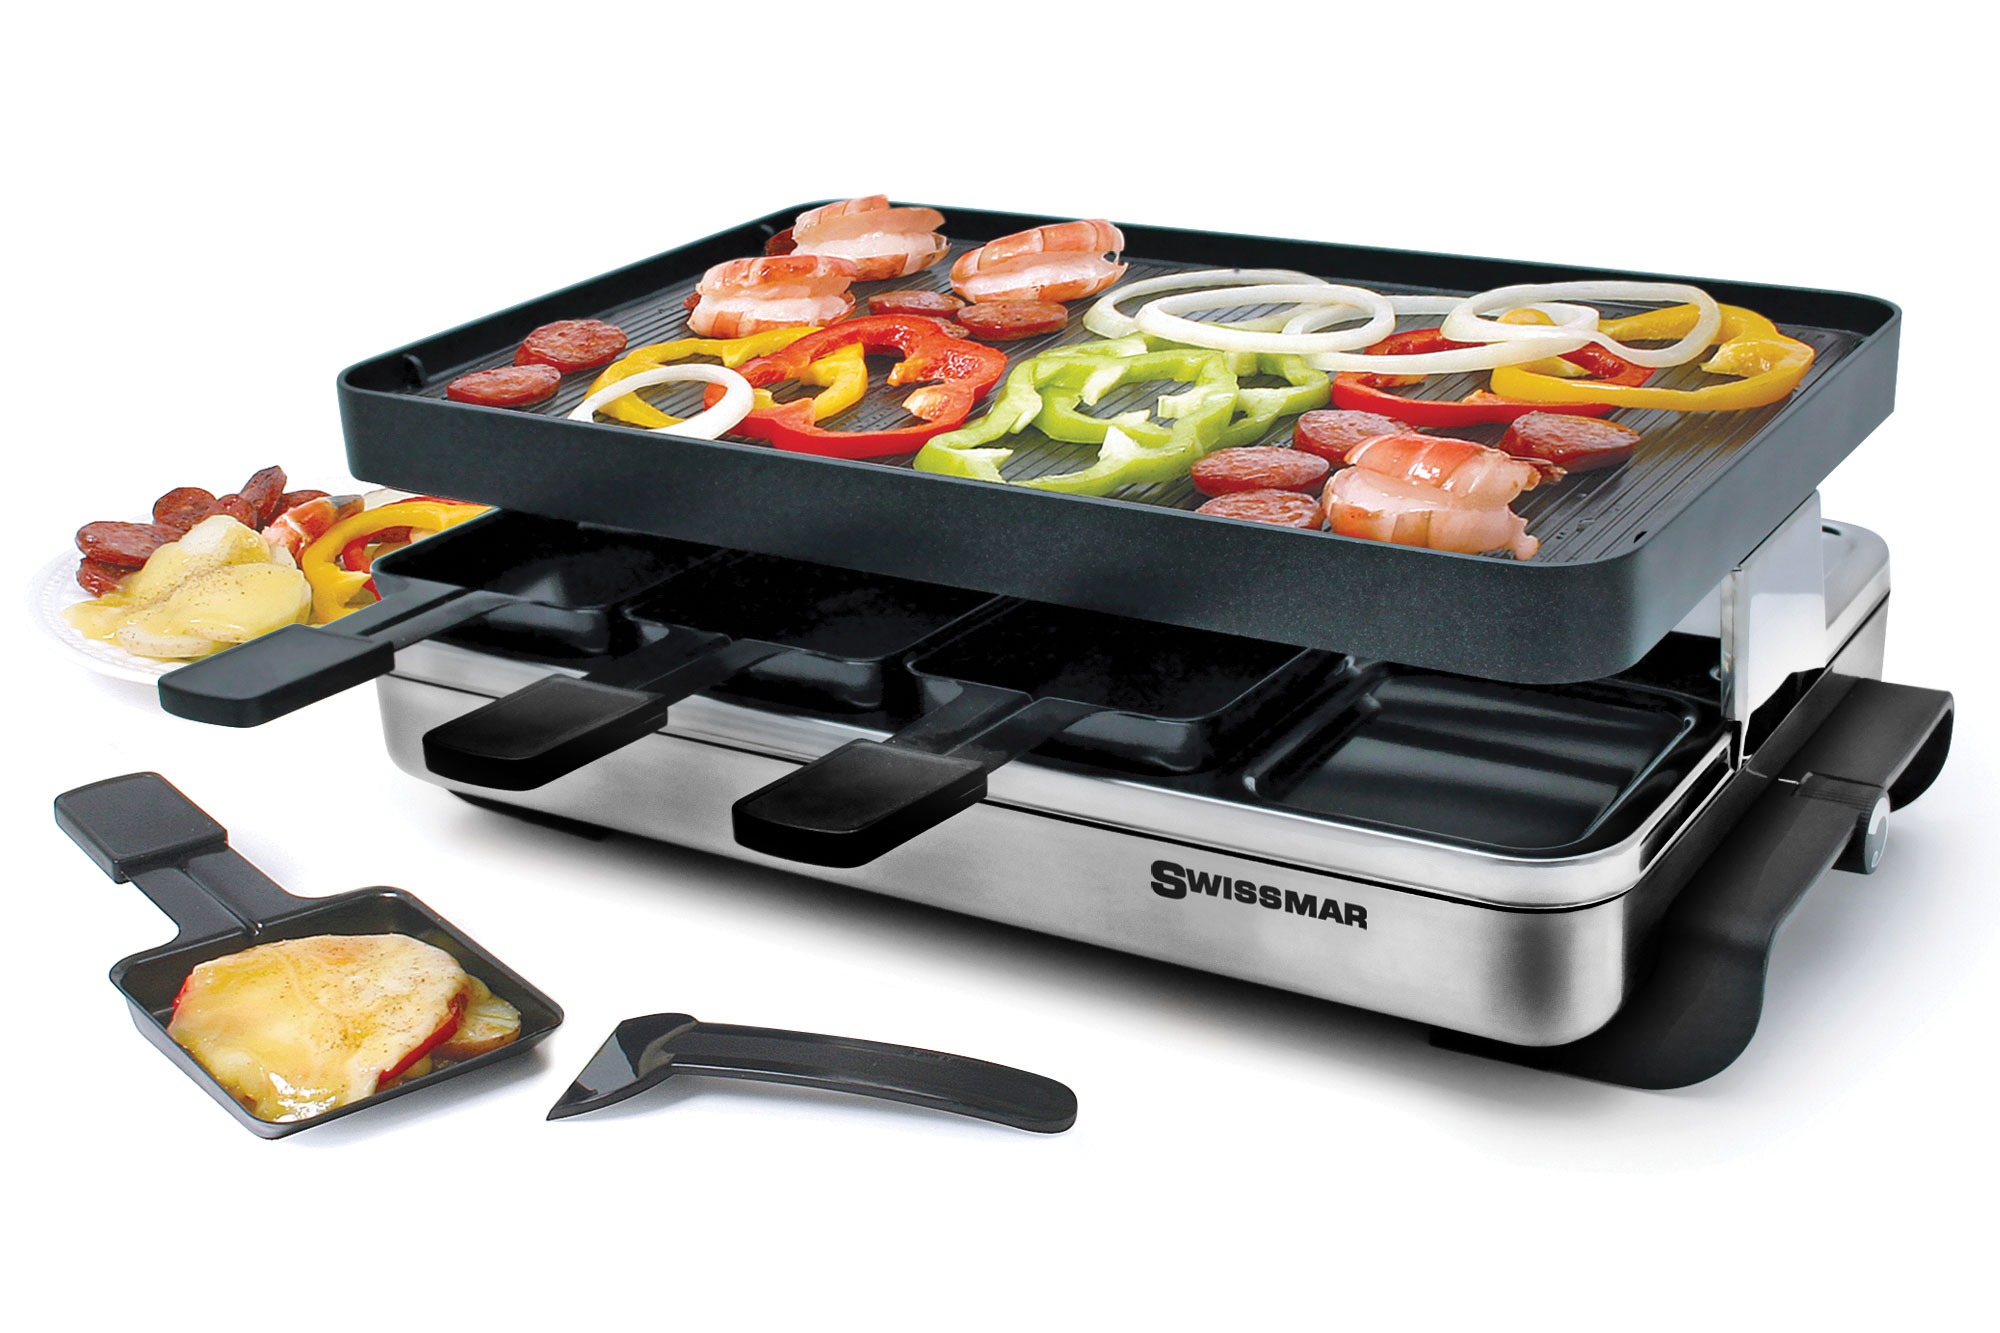 Raclette Tischgrill Zwilling J.a.henckels Swissmar Stelvio Stainless Steel Raclette Grill 8 Person